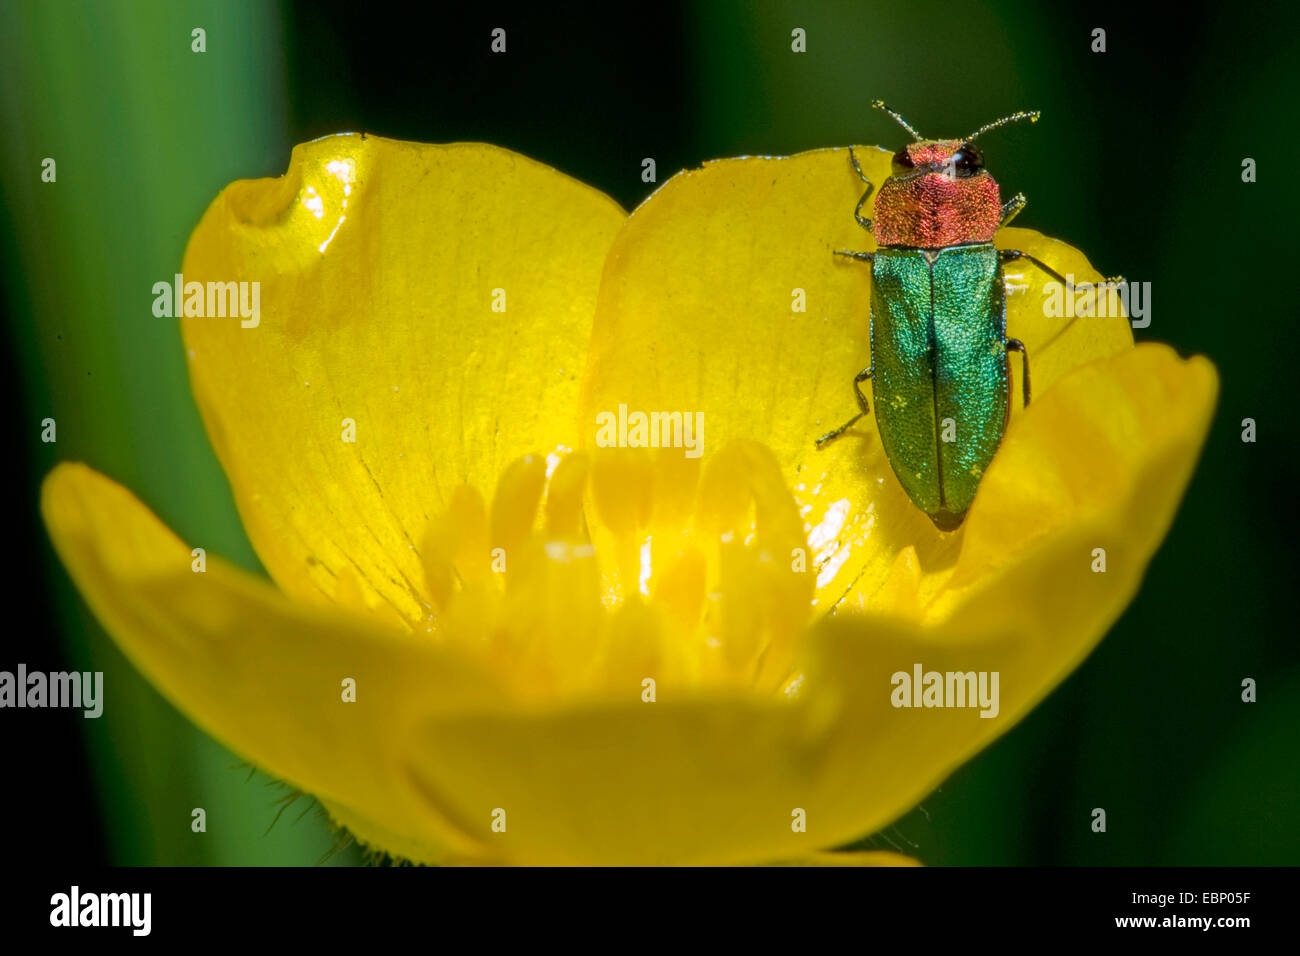 Jewel beetle, Metallic wood-boring beetle (Anthaxia nitidula), on a flower, Germany - Stock Image